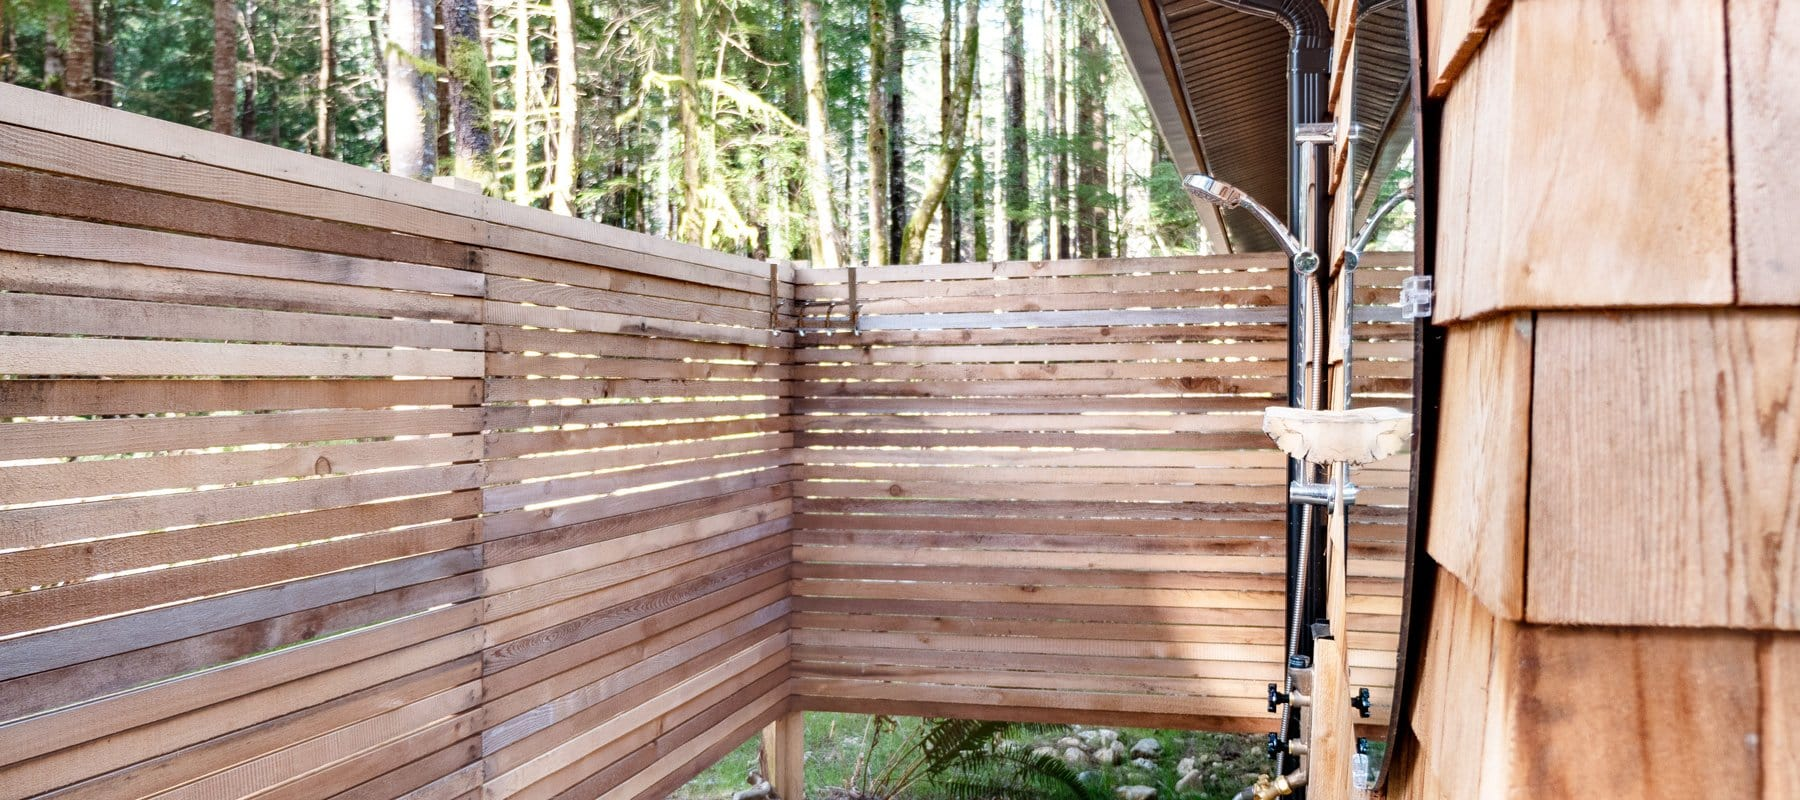 Outdoor showers in Canada